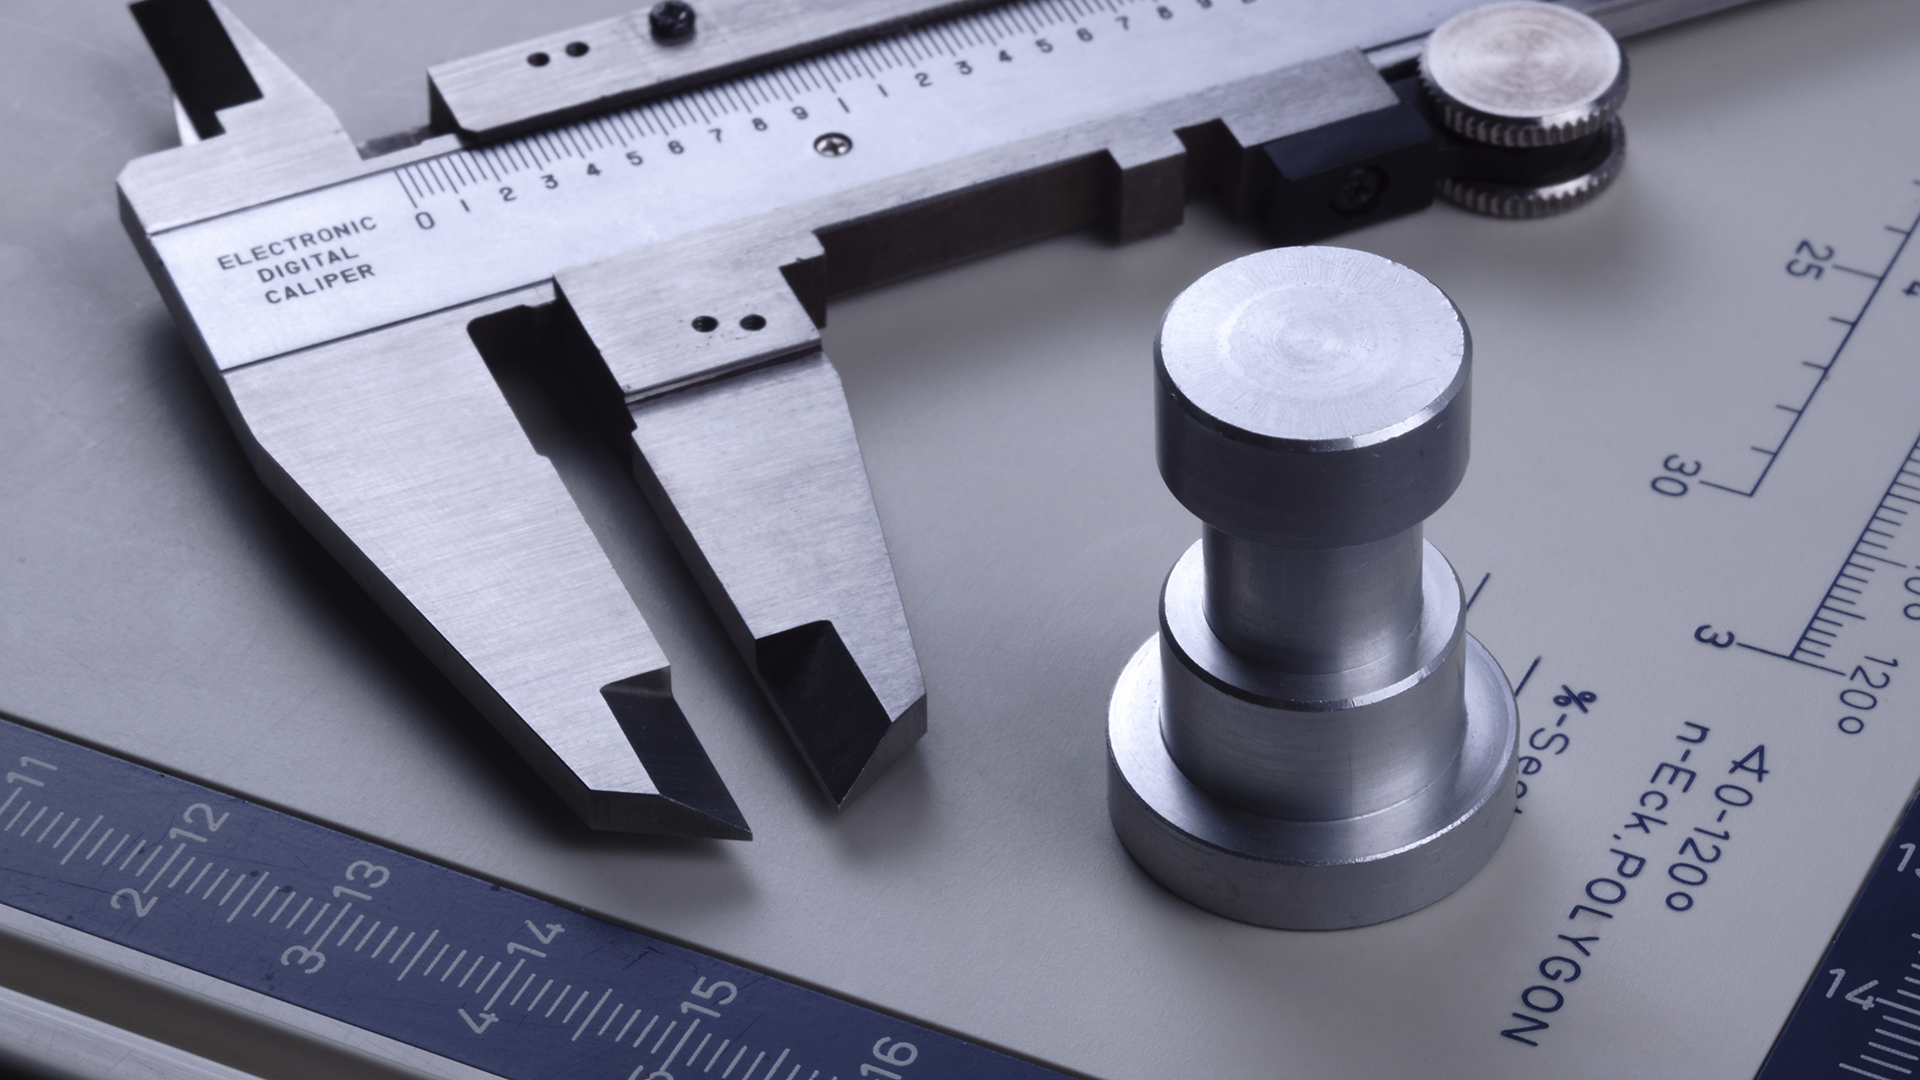 Measuring and testing tools